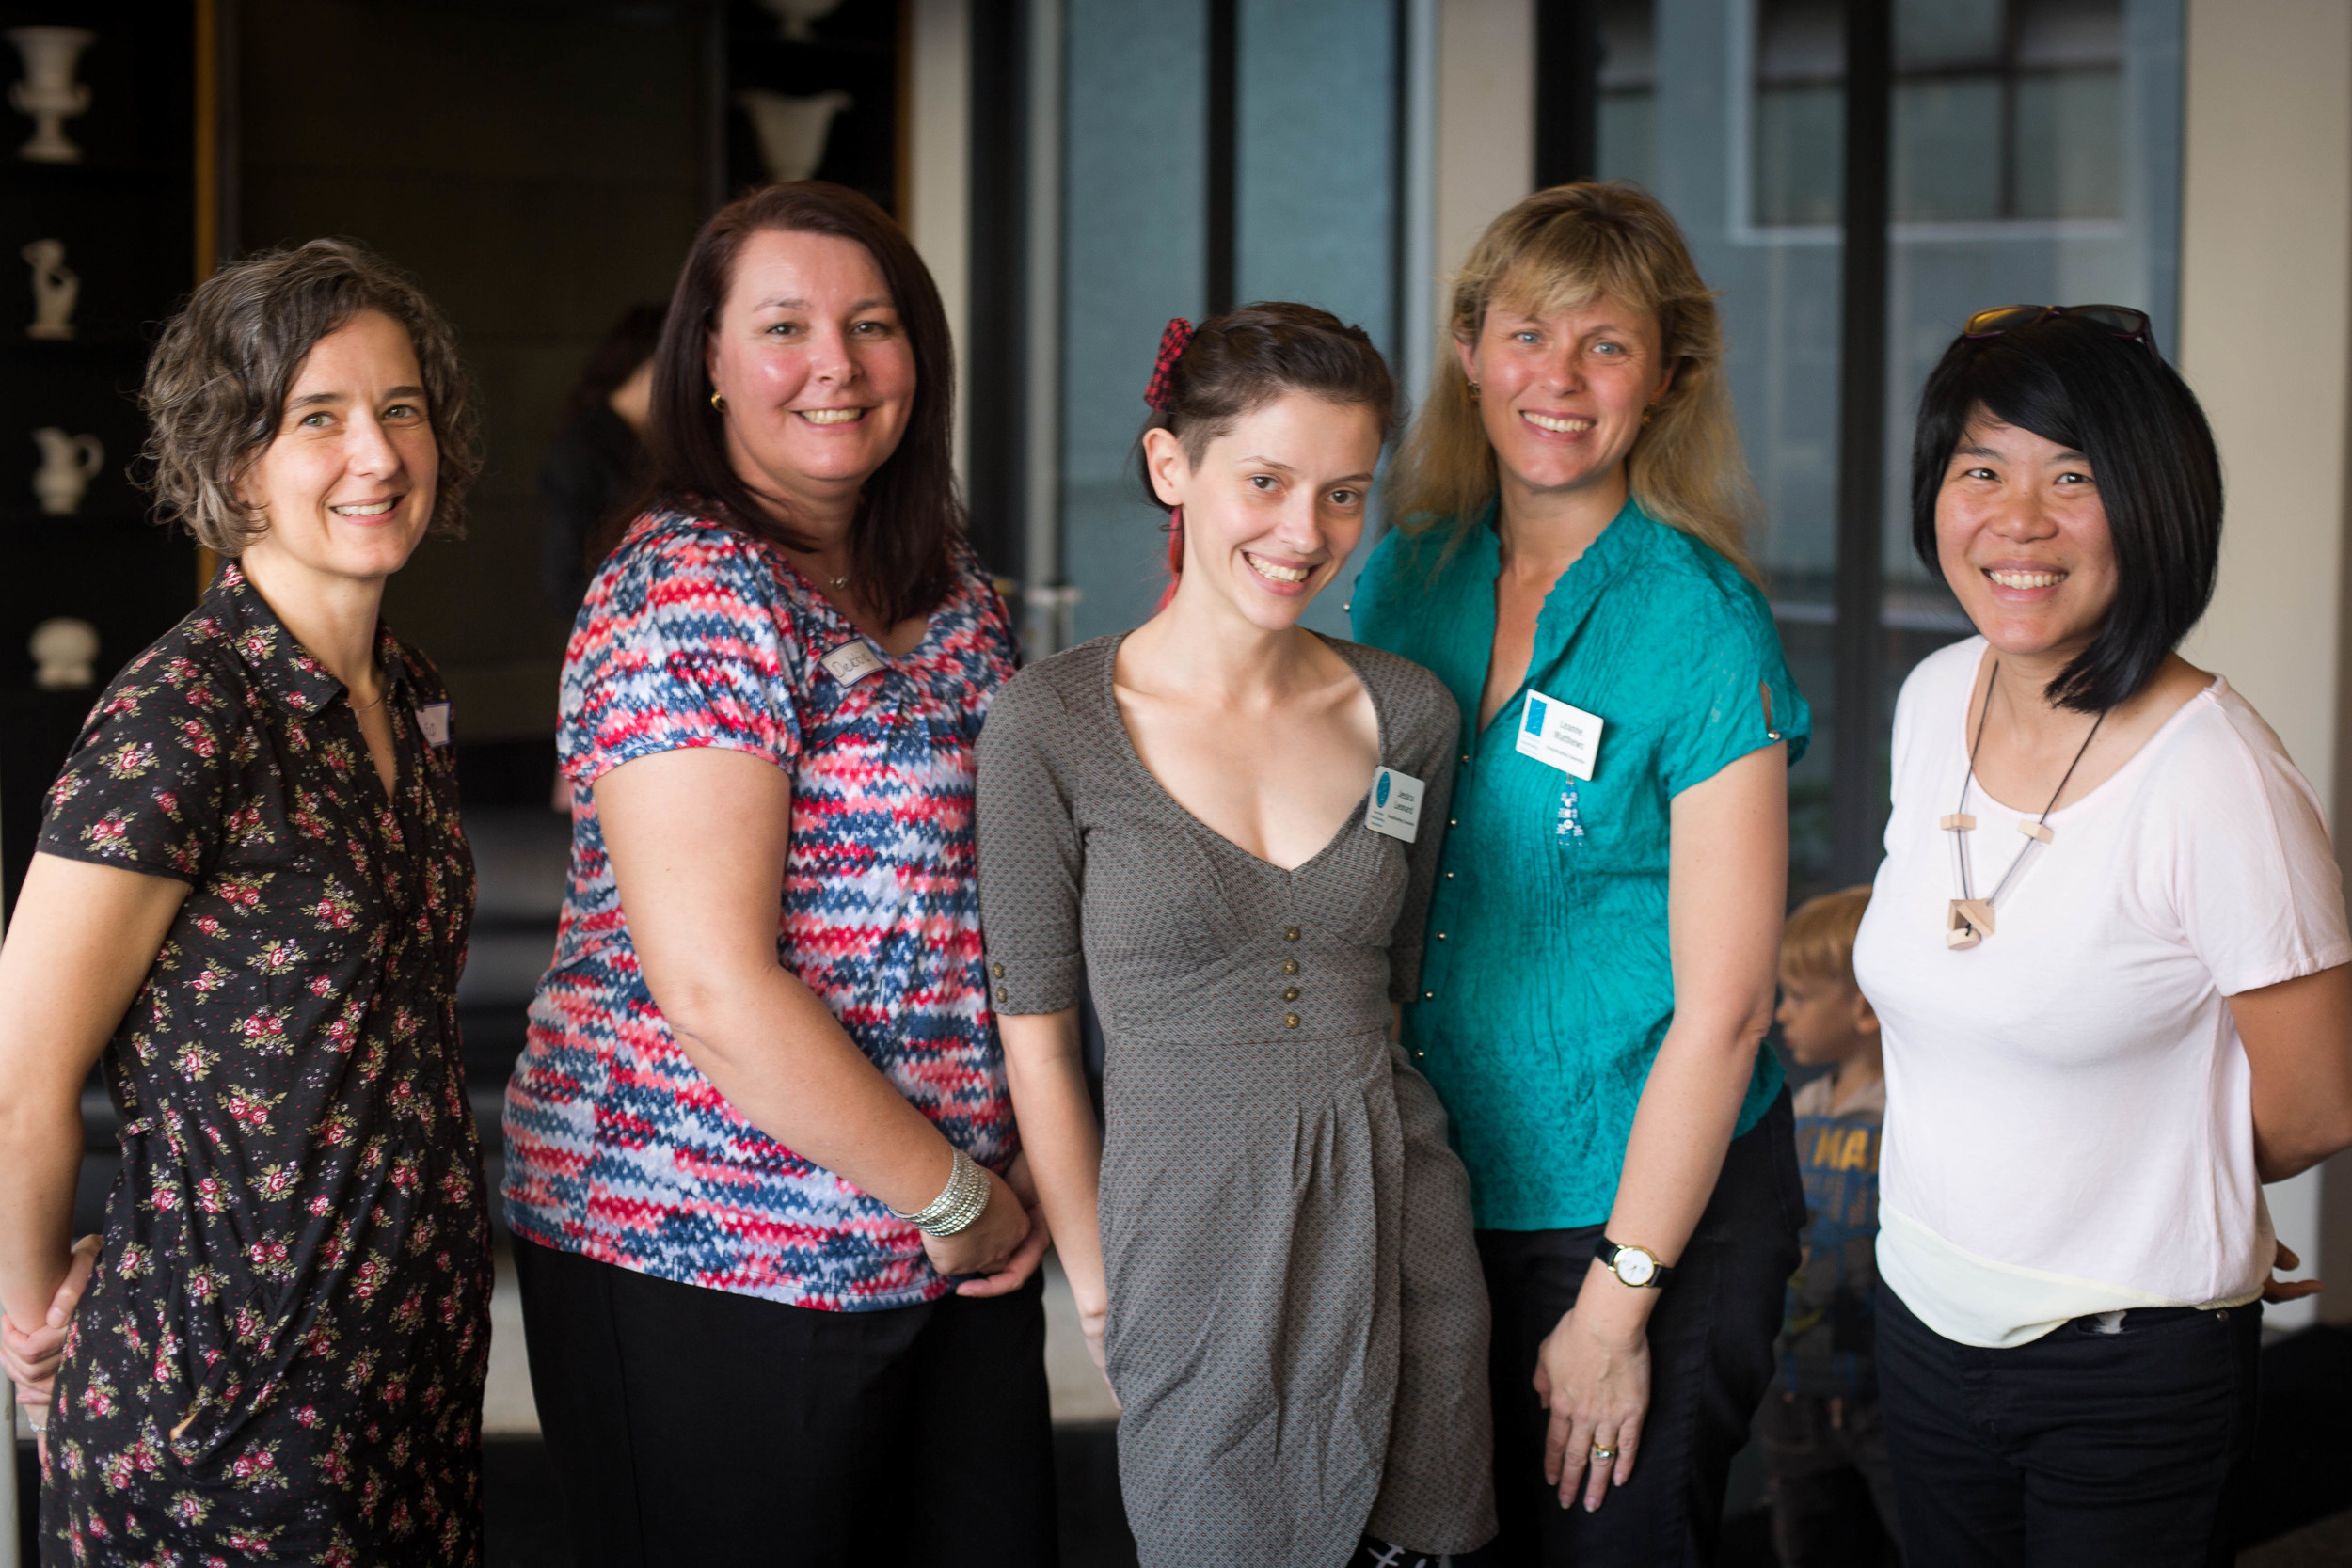 Australian Breastfeeding Association Counsellors, left to right: Lisa Vandenberg, Debbie Yates, Jess Leonard, Leanne Bromley, Lynn Ng.